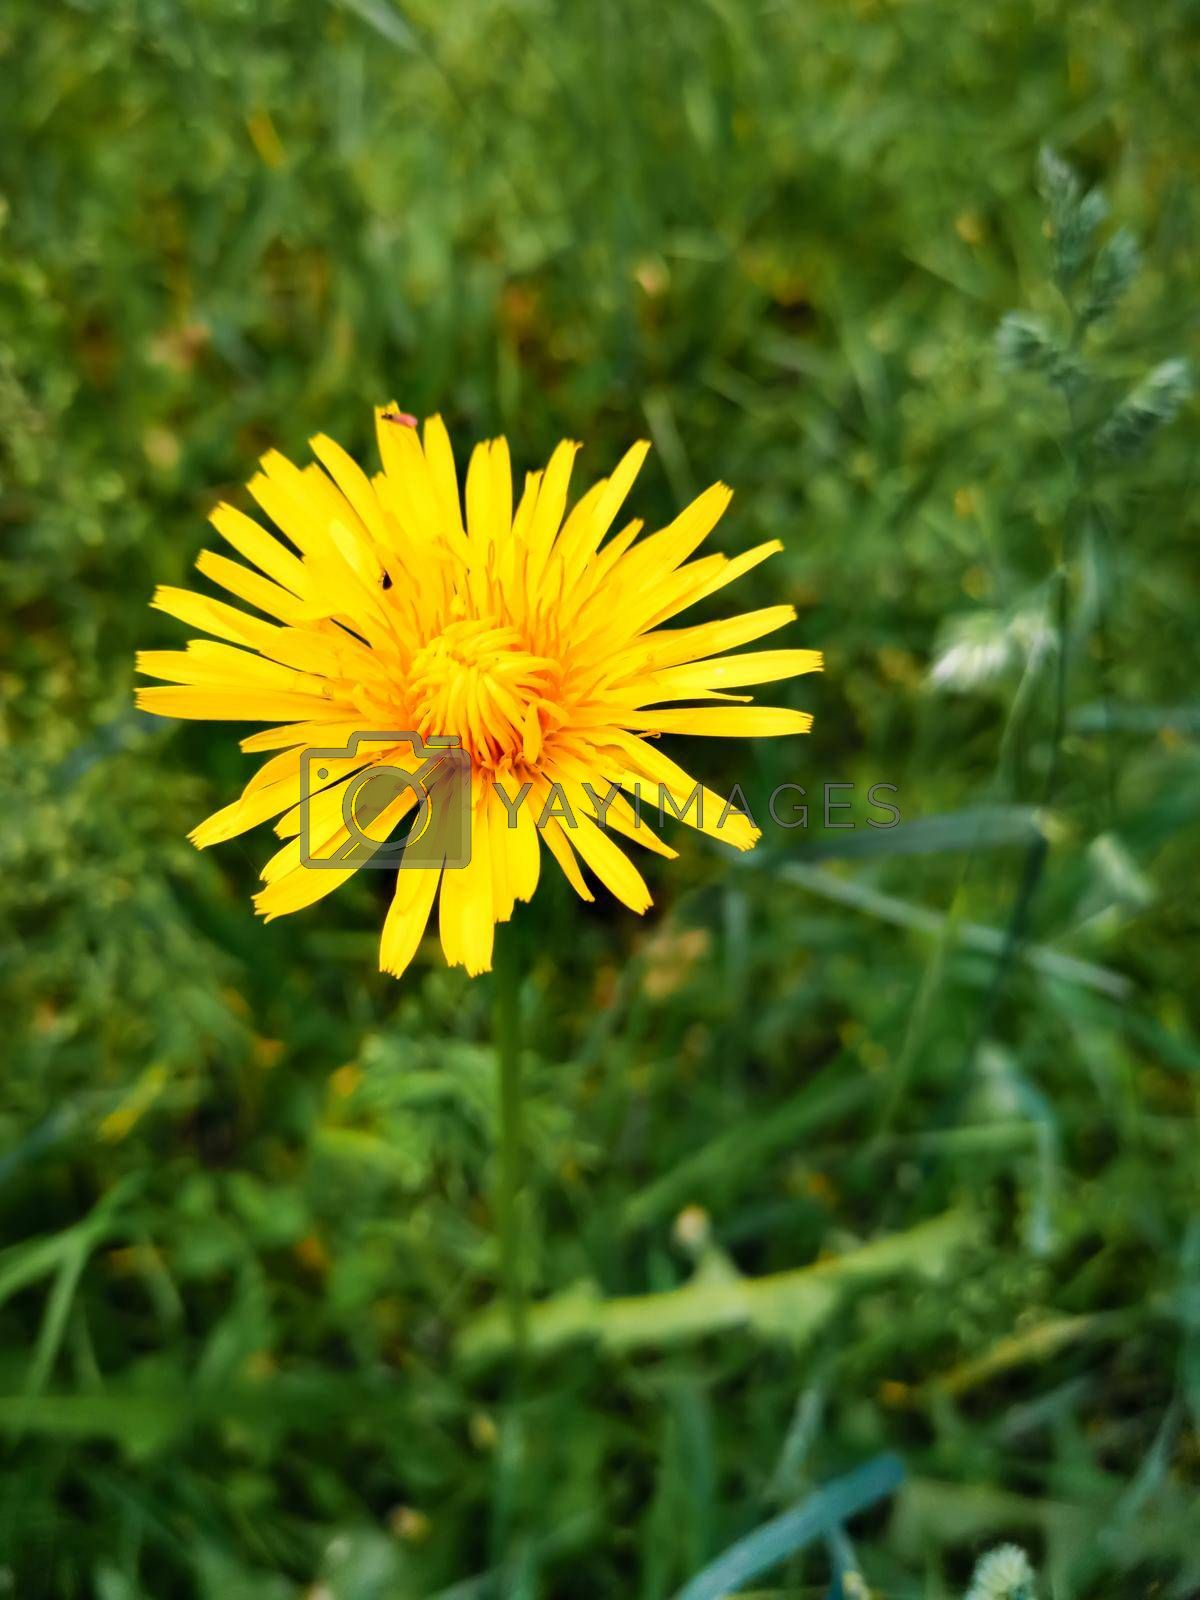 Closeup shot of a yellow dandelion on a blurred background